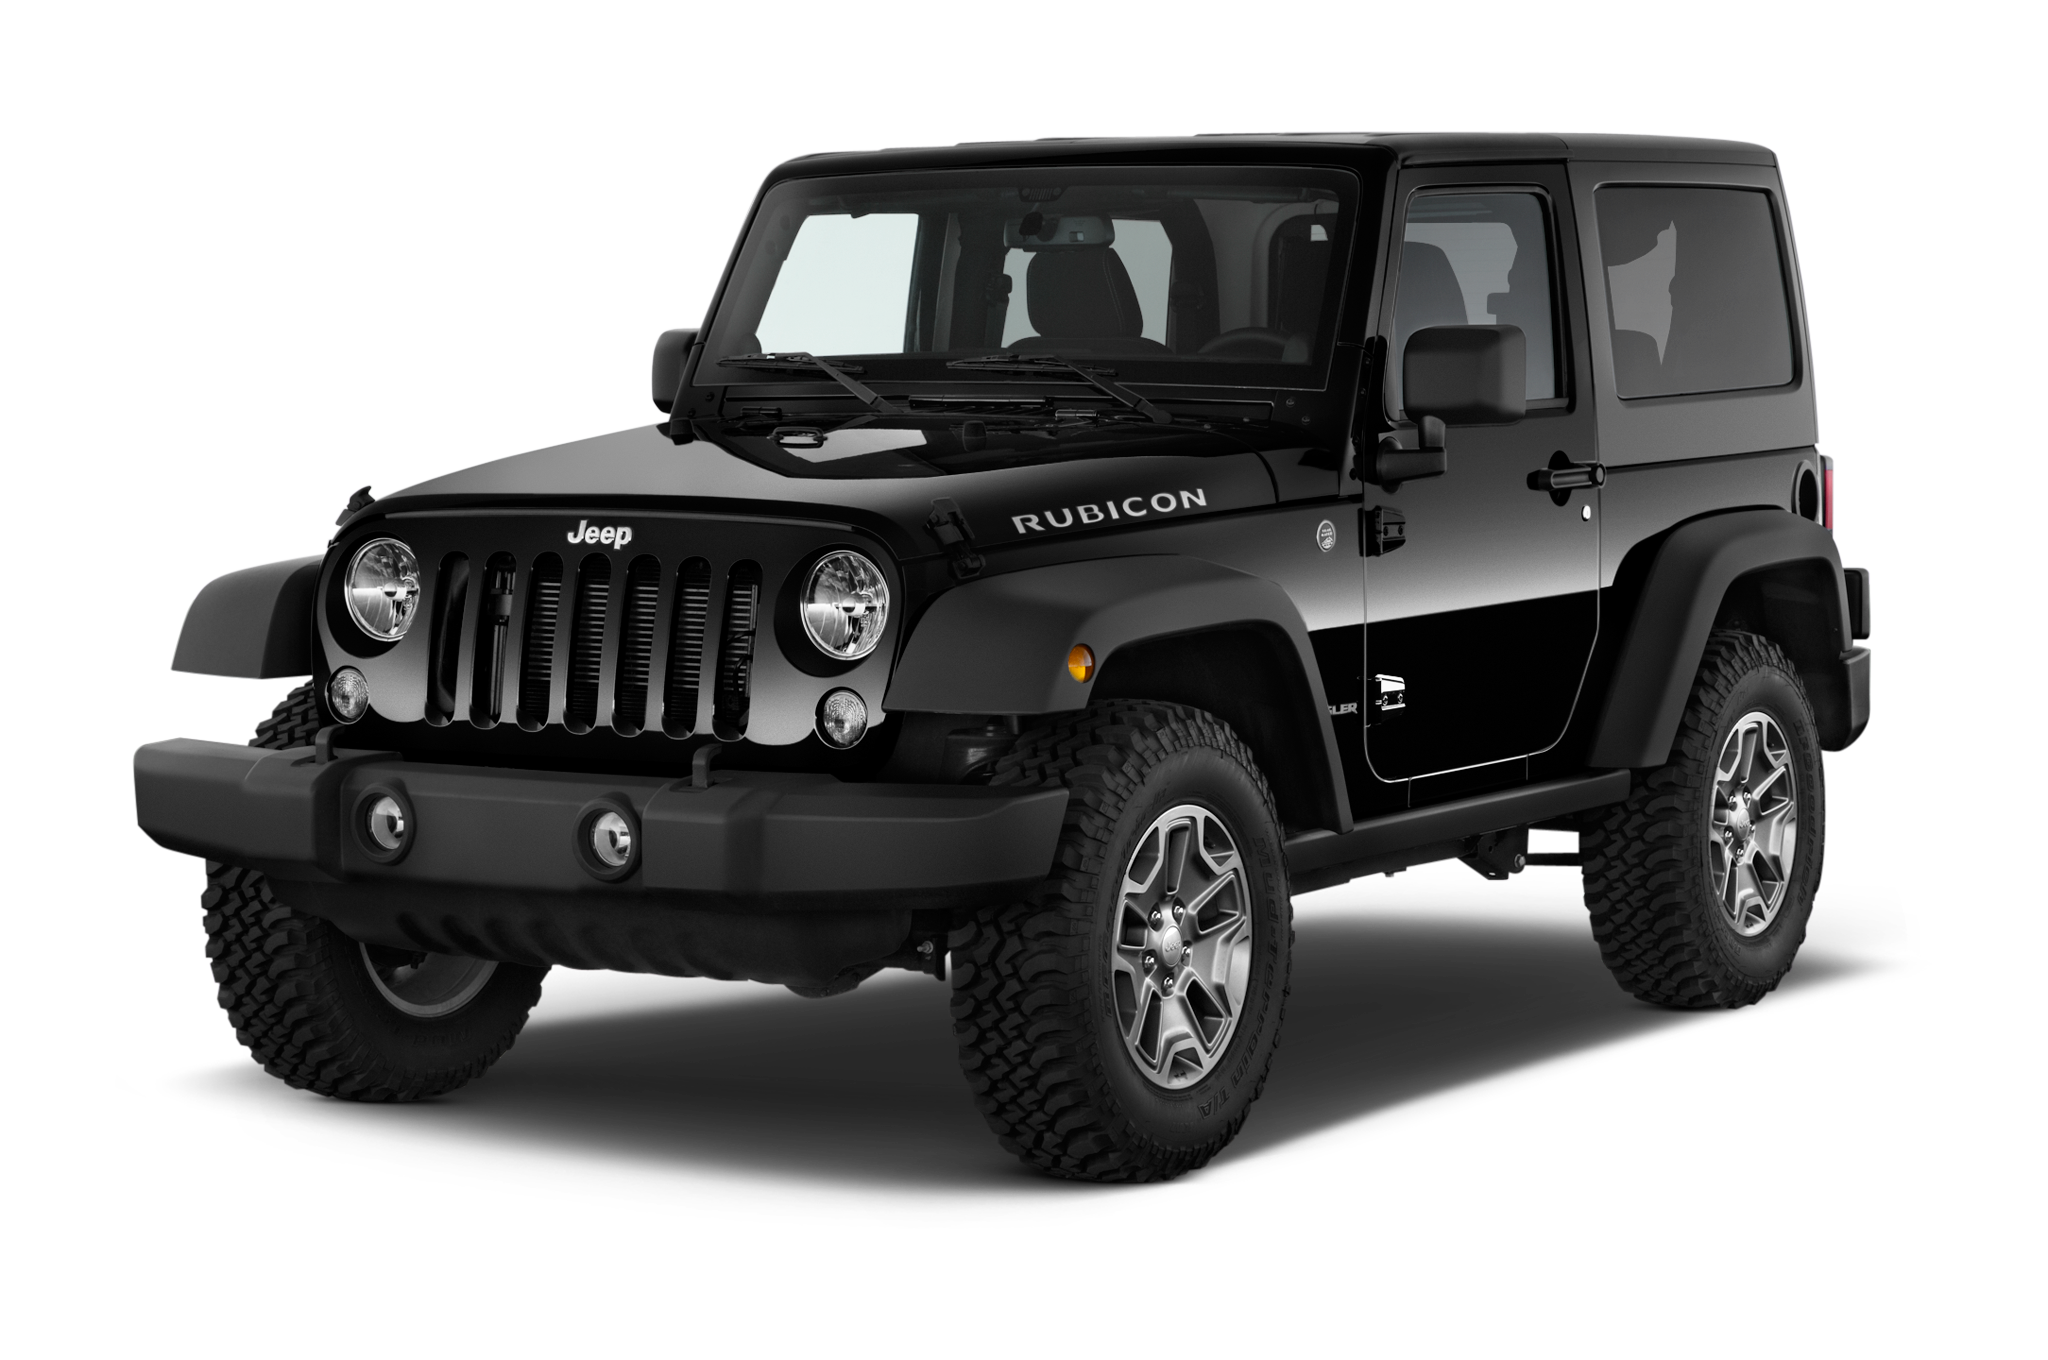 2015 jeep wrangler png. Reviews and rating